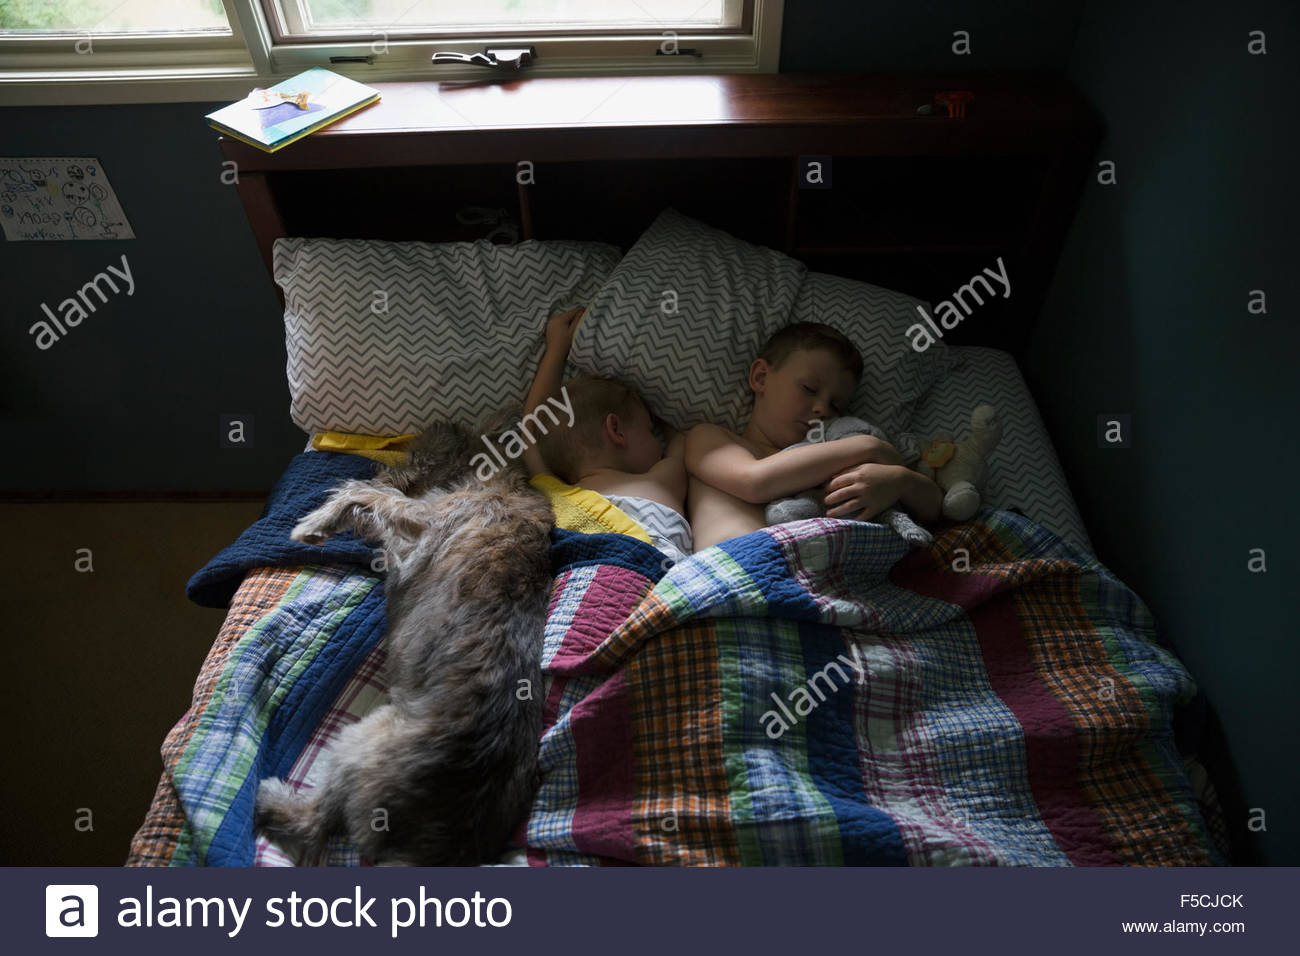 Dog and brothers sleeping in bed - Stock Image